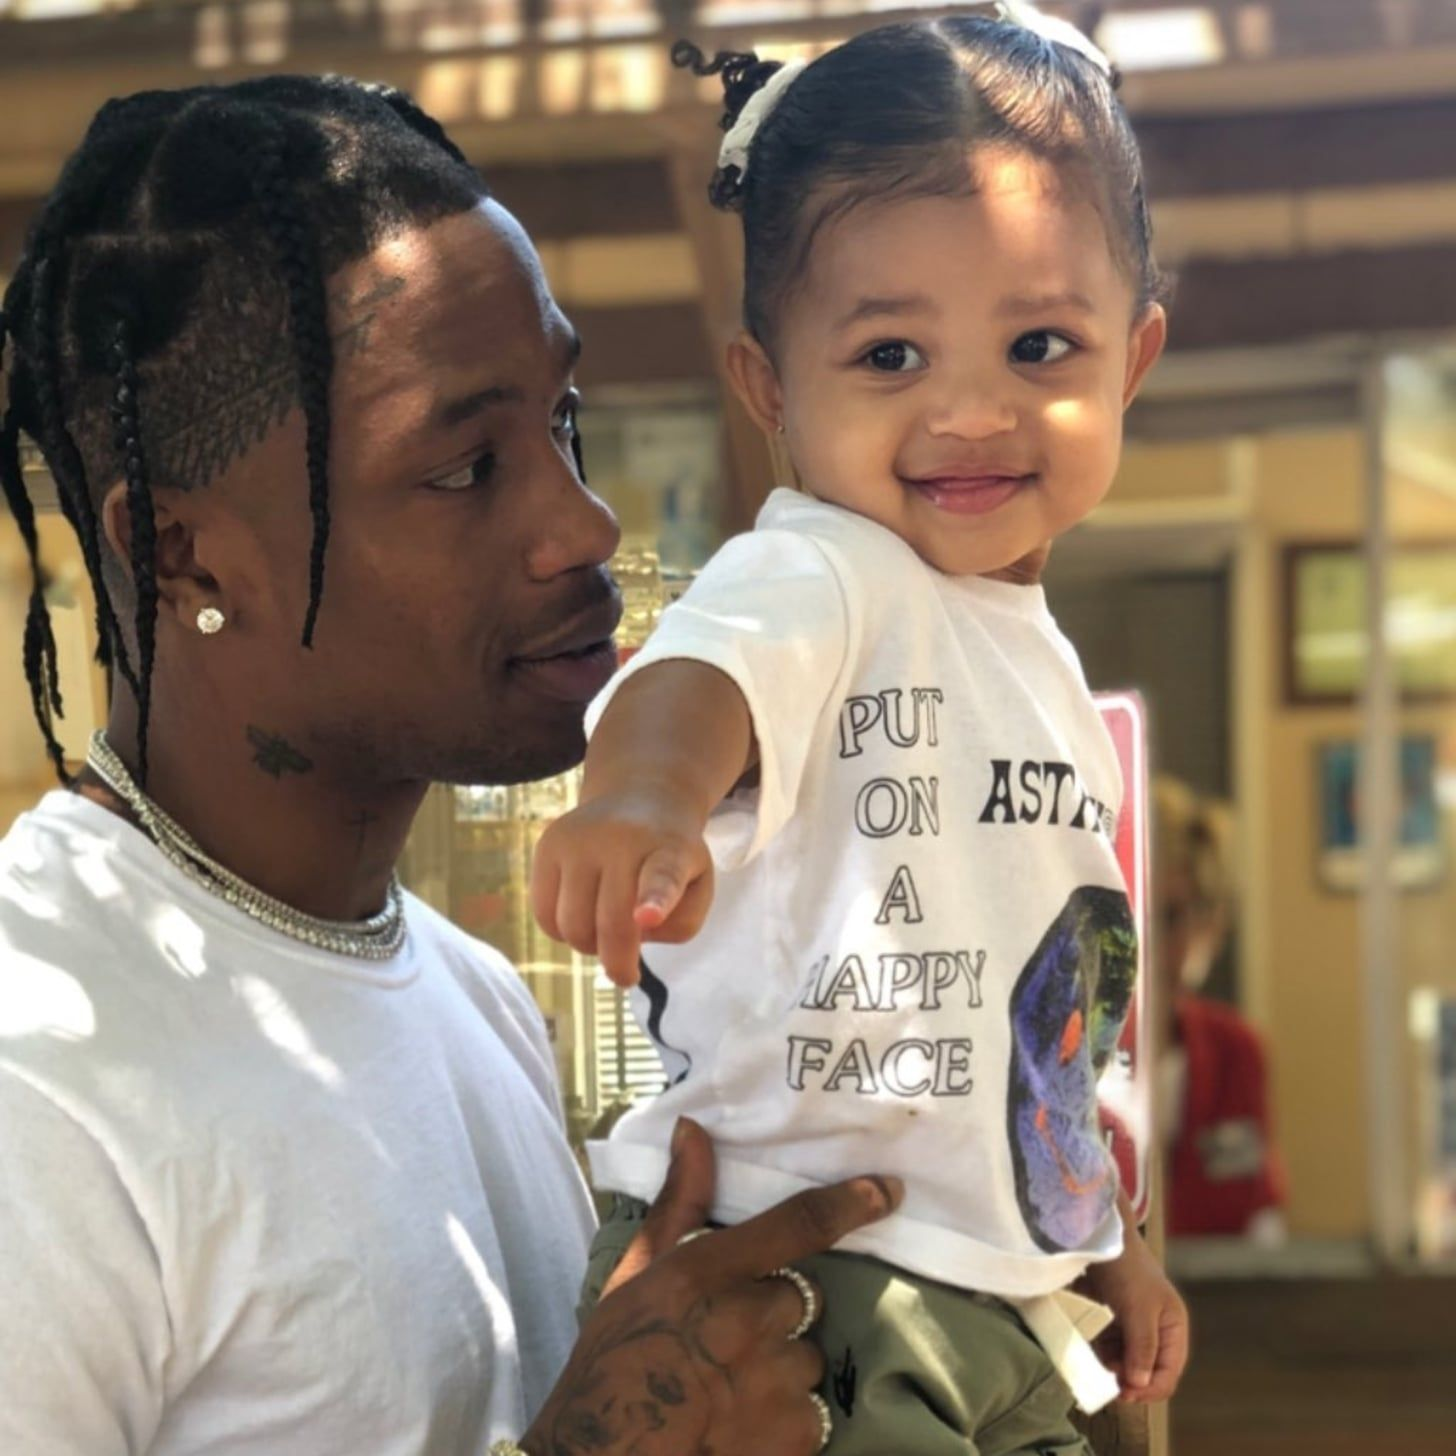 Travis Scott Reveals His Daughter With Kylie Jenner, Stormi Changed His Life – Here's How!